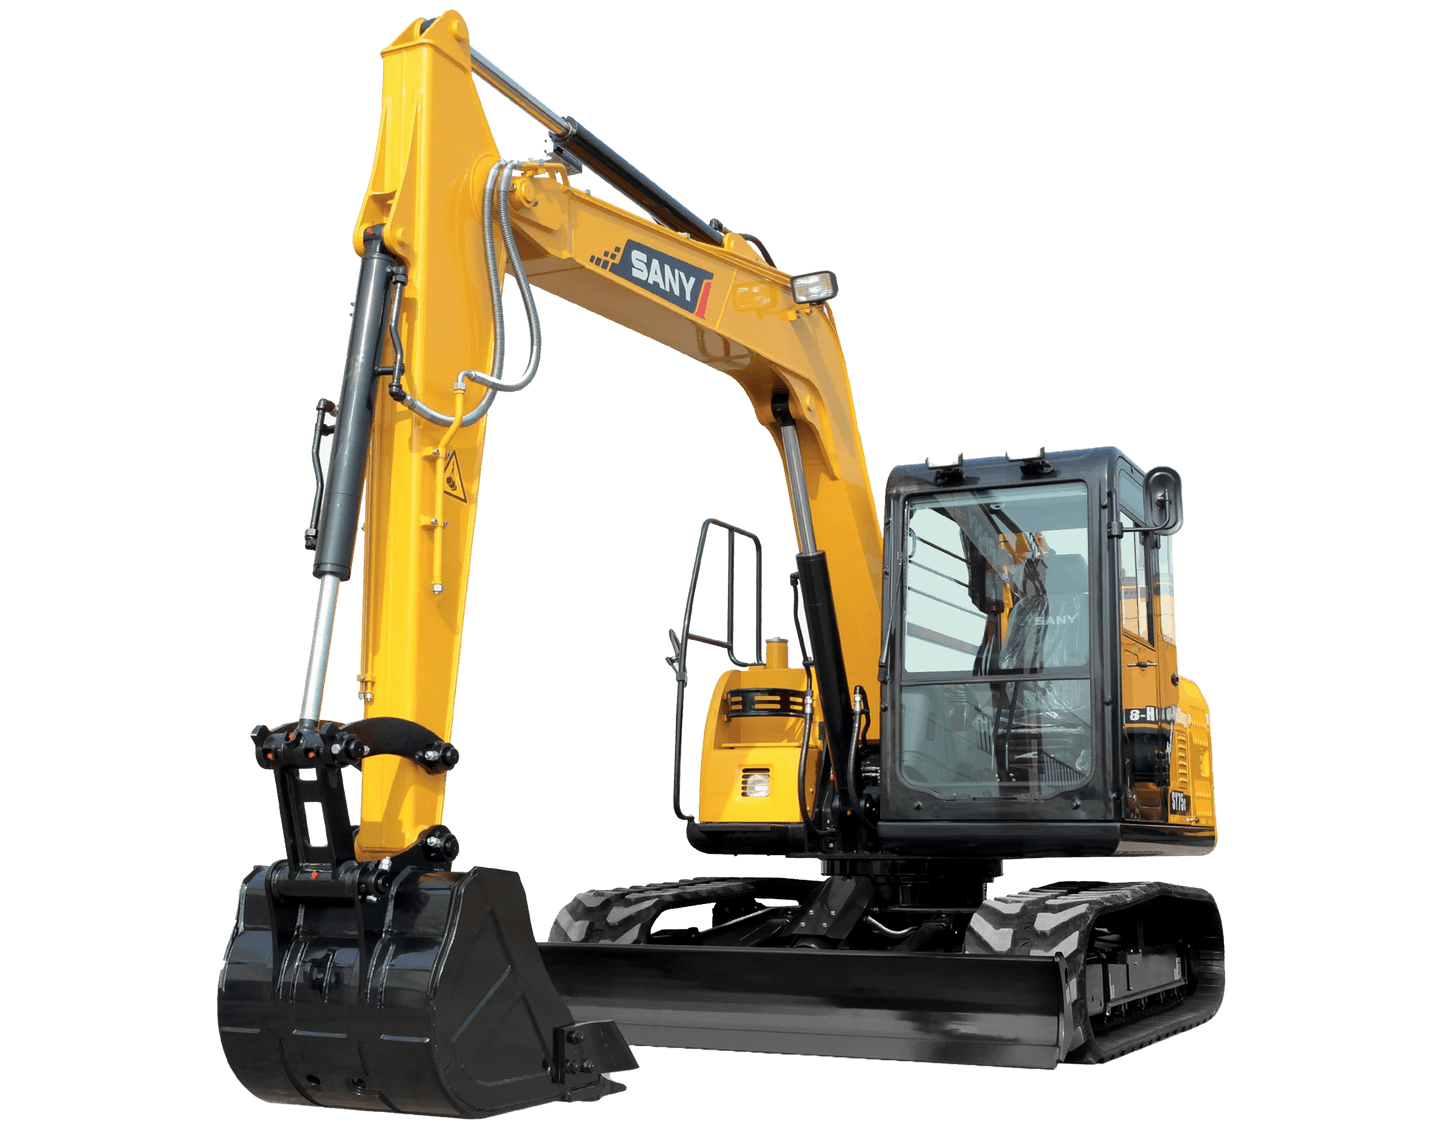 sany-excavators-for-sale-or-rental